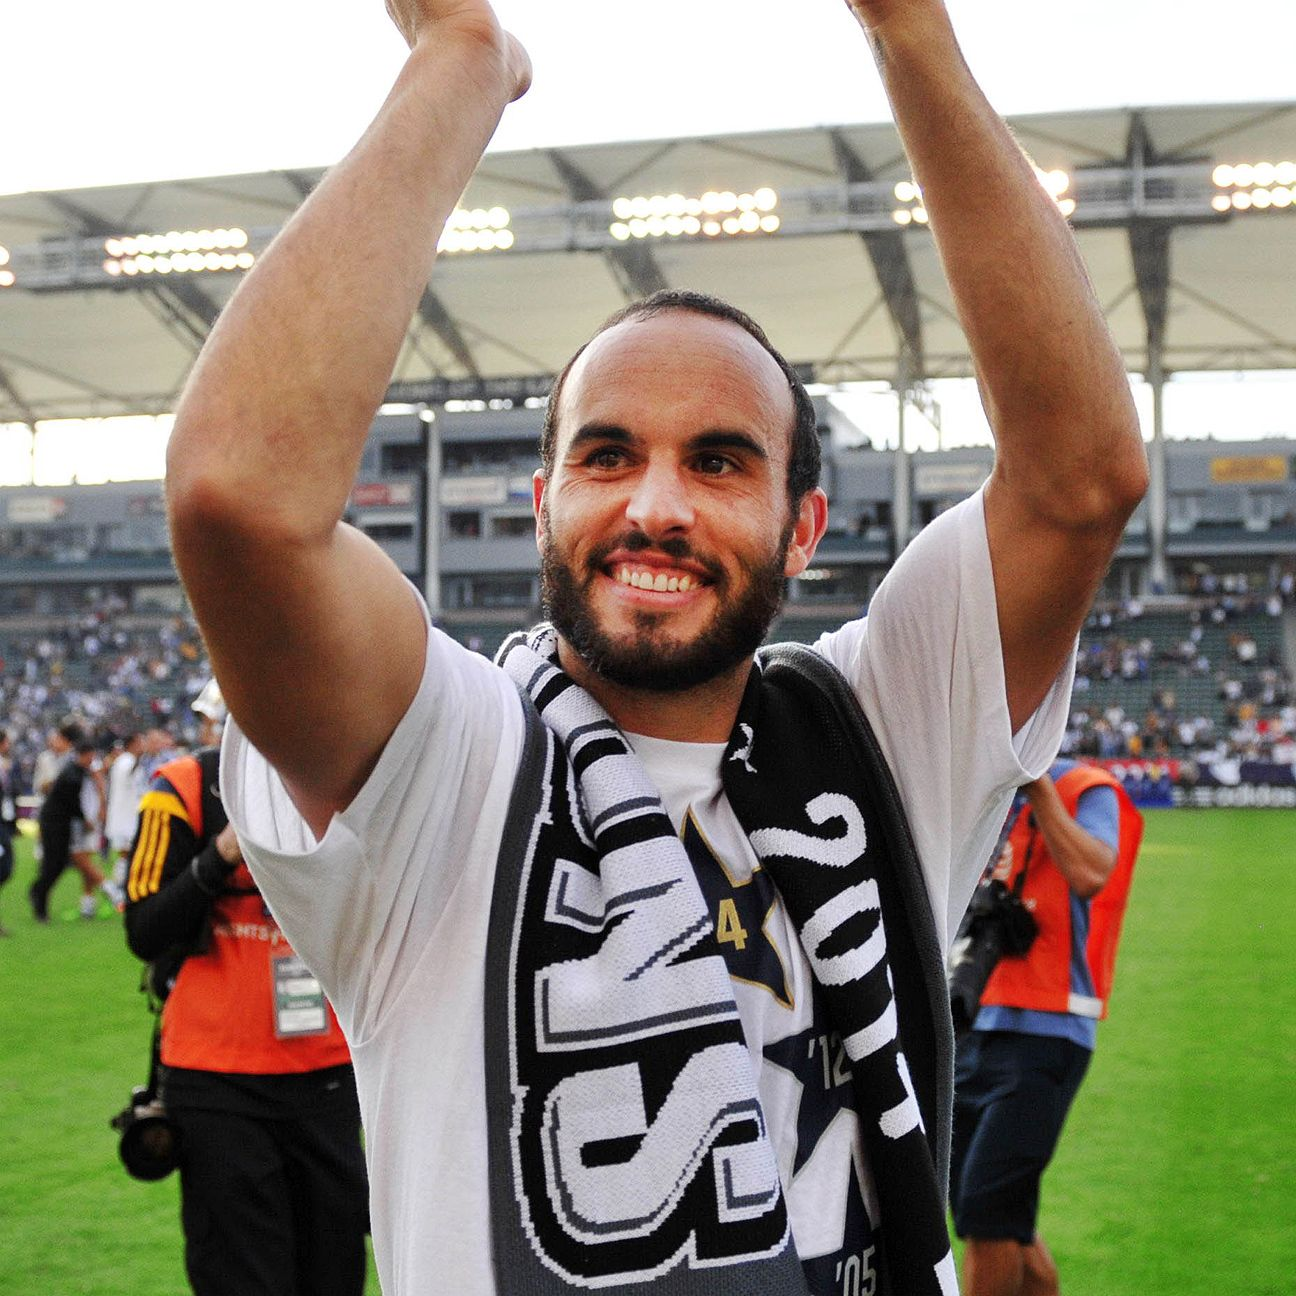 It was not a vintage Landon Donovan performance, nevertheless the all-time leading scorer in league history ends his career with a sixth championship to his name.